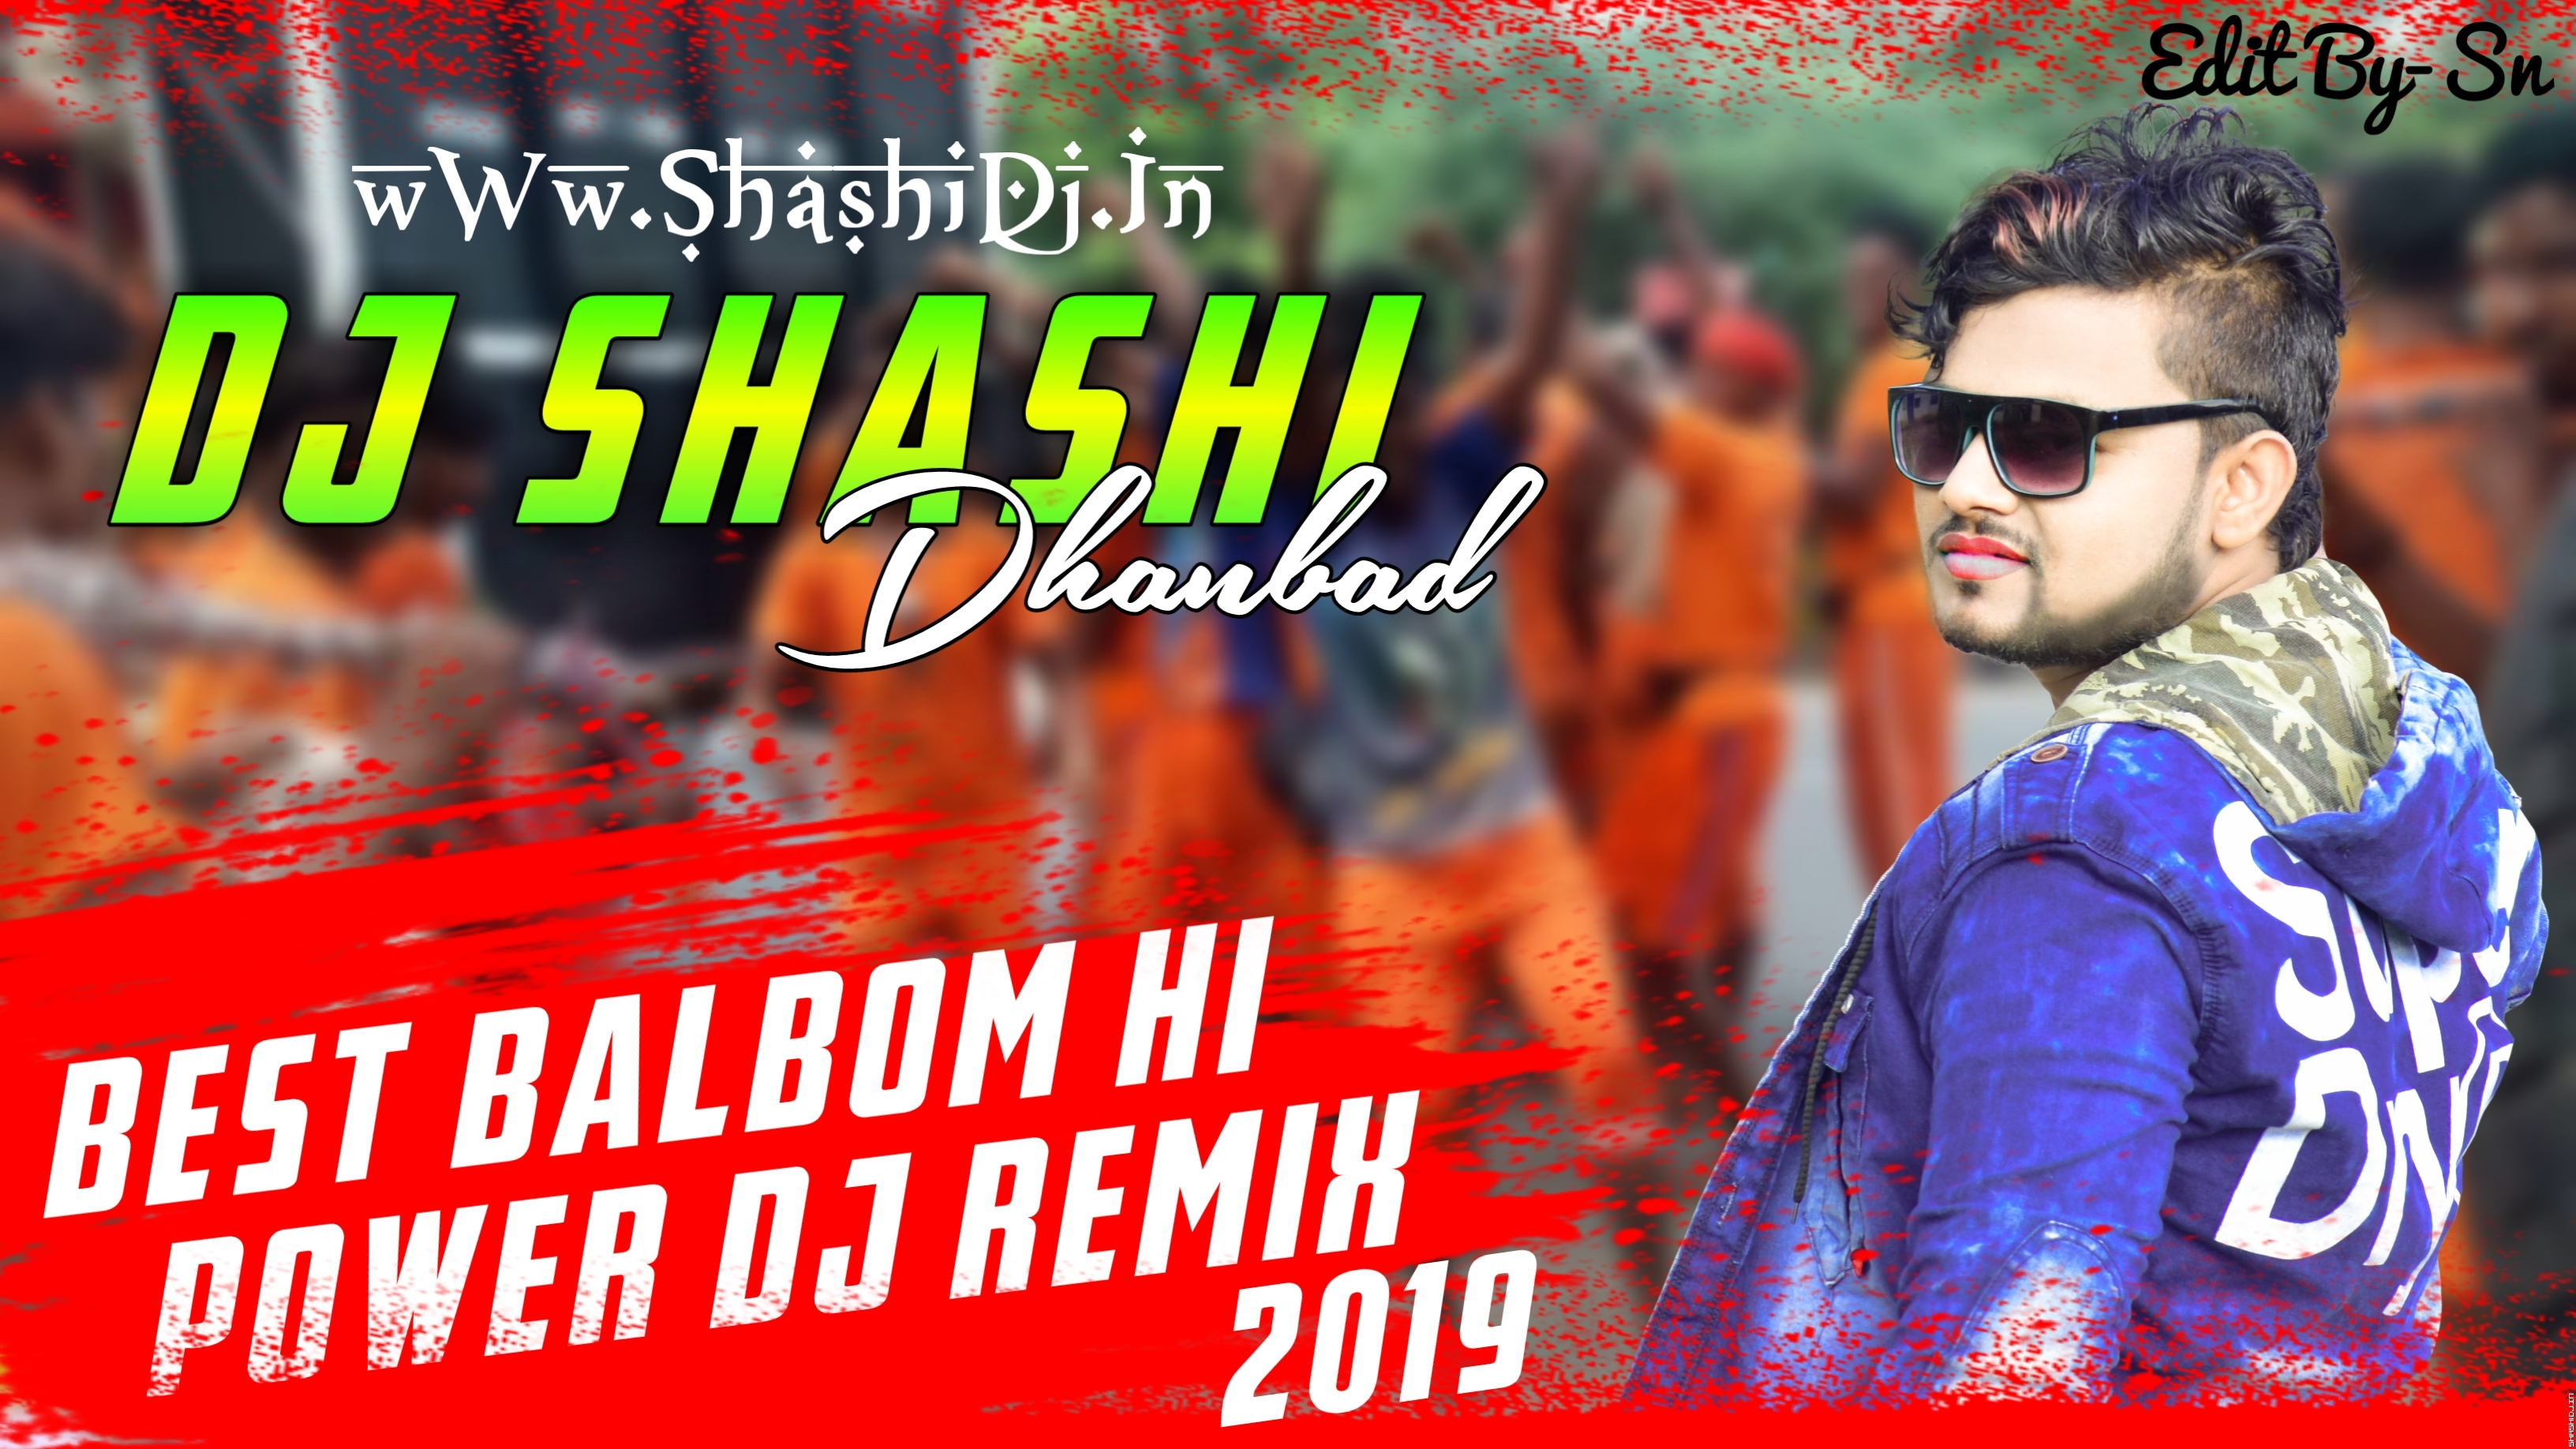 Best Bolbum Jagram Mix 2019 Dj Shashi.mp3